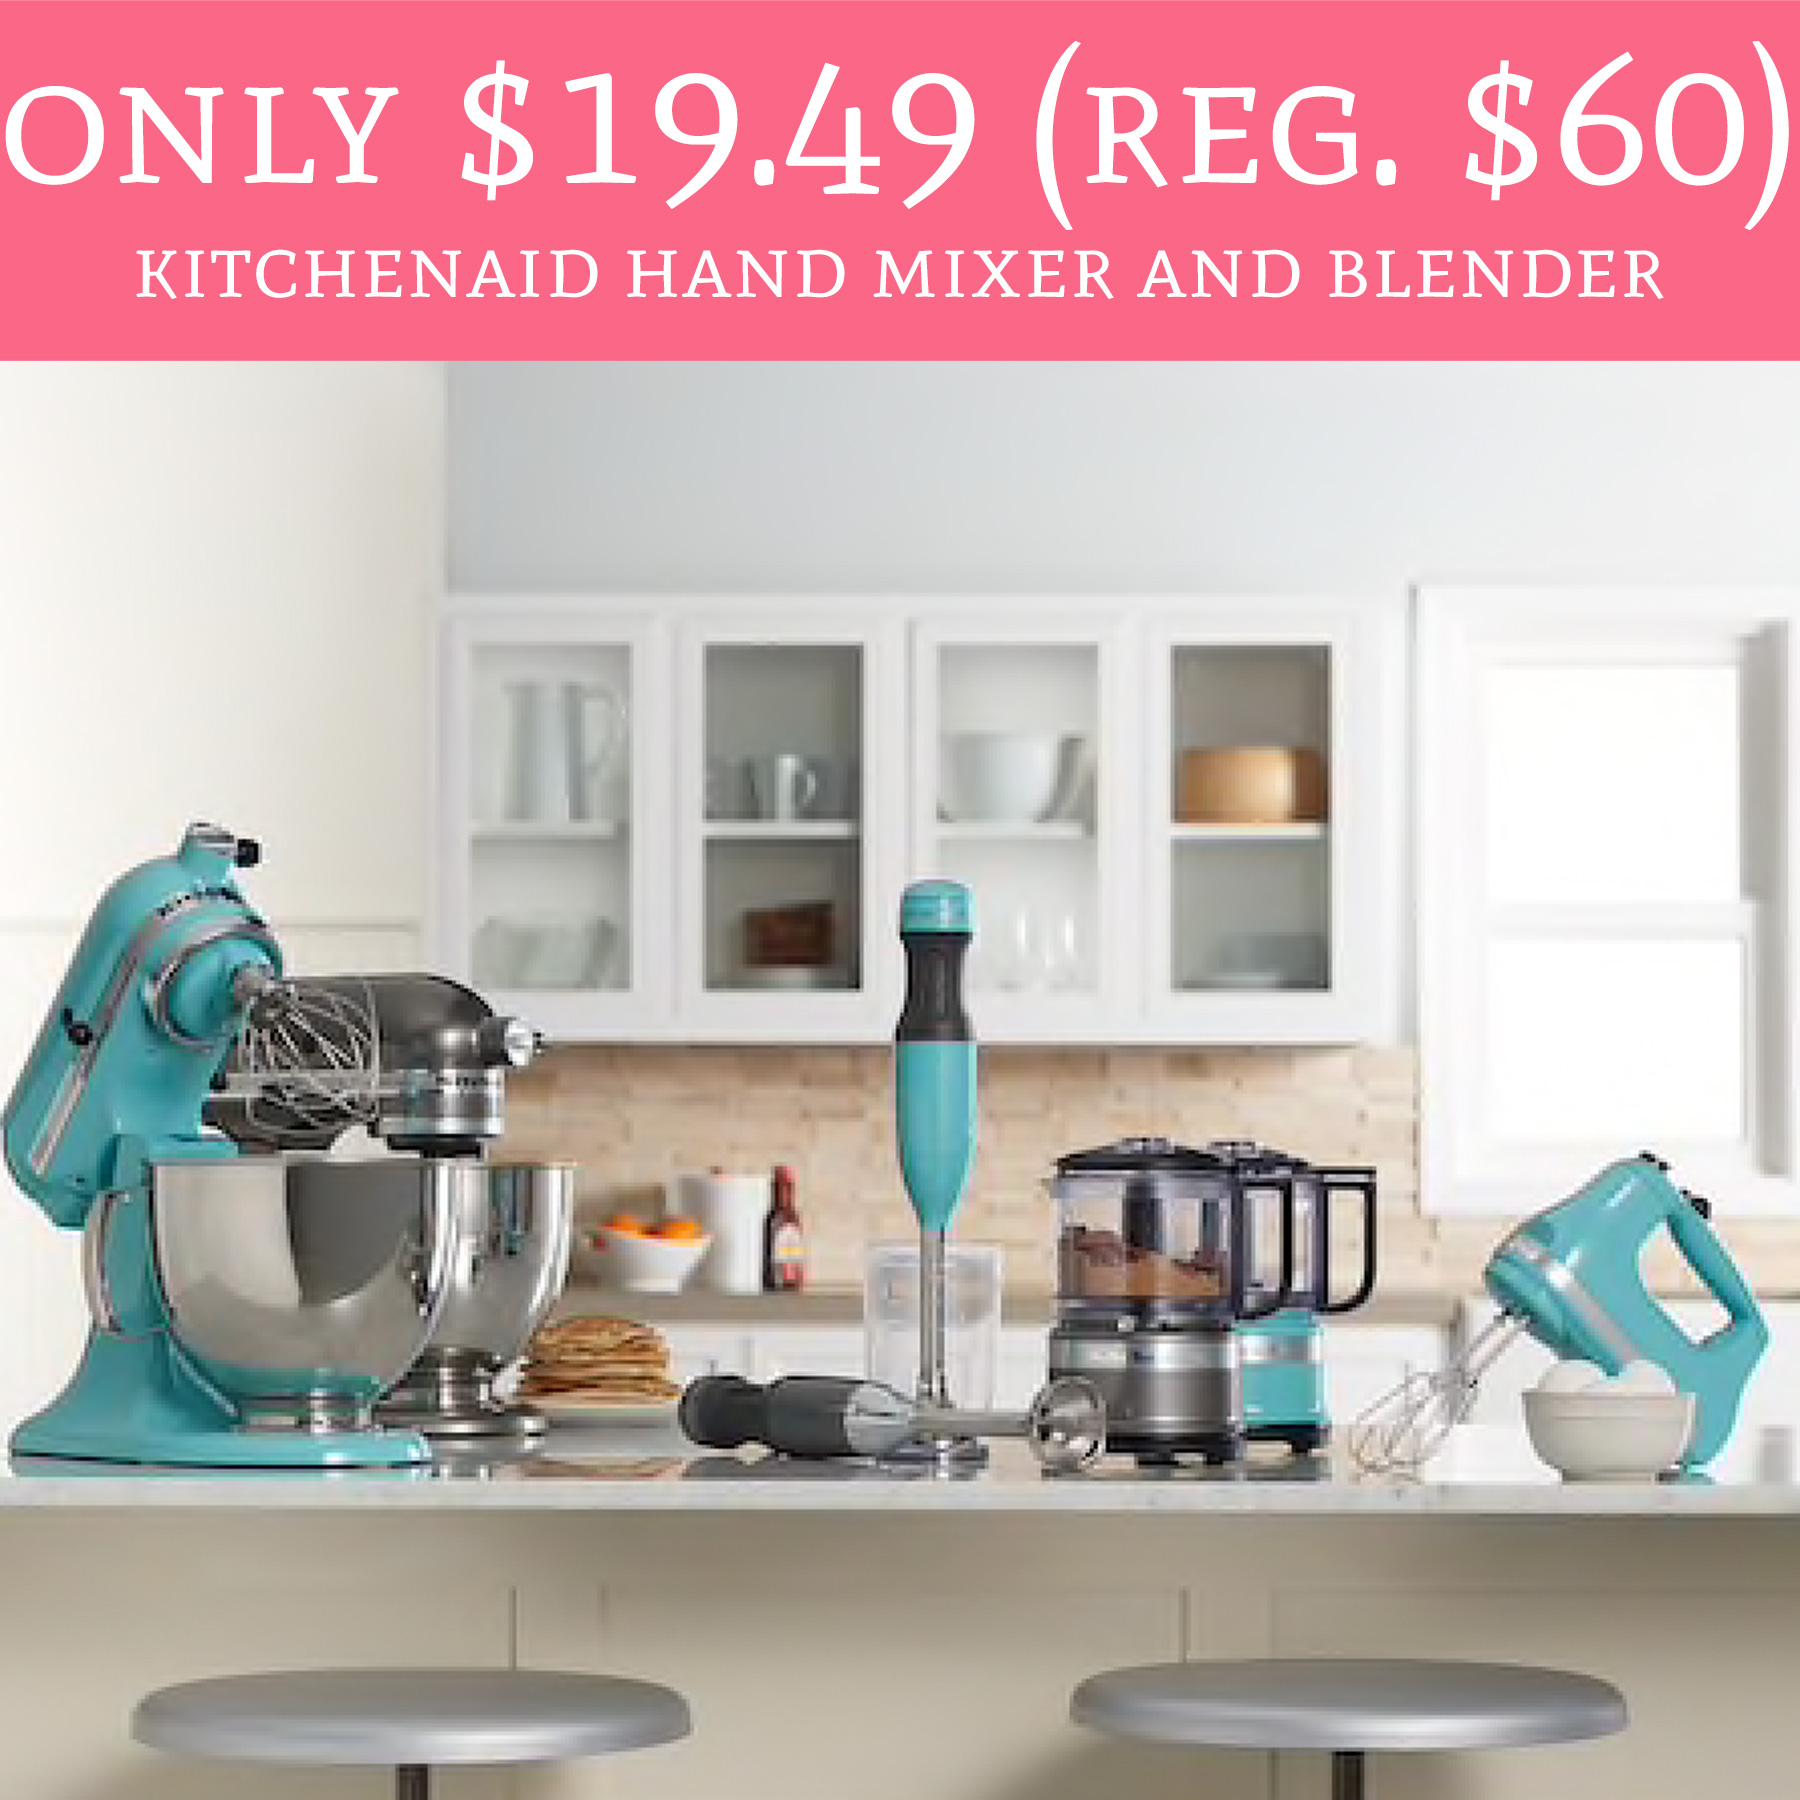 Kitchen Aid Hand Mixer on hand blenders, food mixer, elite cuisine hand mixer, manual hand mixer, philips hand mixer, kitchen mixer, cordless hand mixer, kitchenaid stand mixer, wisk mixer, ge hand mixer, wolfgang puck hand mixer, oster hand mixer, waring pro hand mixer, cuisinart hand mixer, lg hand mixer, braun hand mixer, emerson hand mixer, krups hand mixer, sunbeam hand mixer, viking hand mixer, kalorik hand mixer, 9 speed hand mixer, electric hand mixer, electric mixer, rival hand mixer,